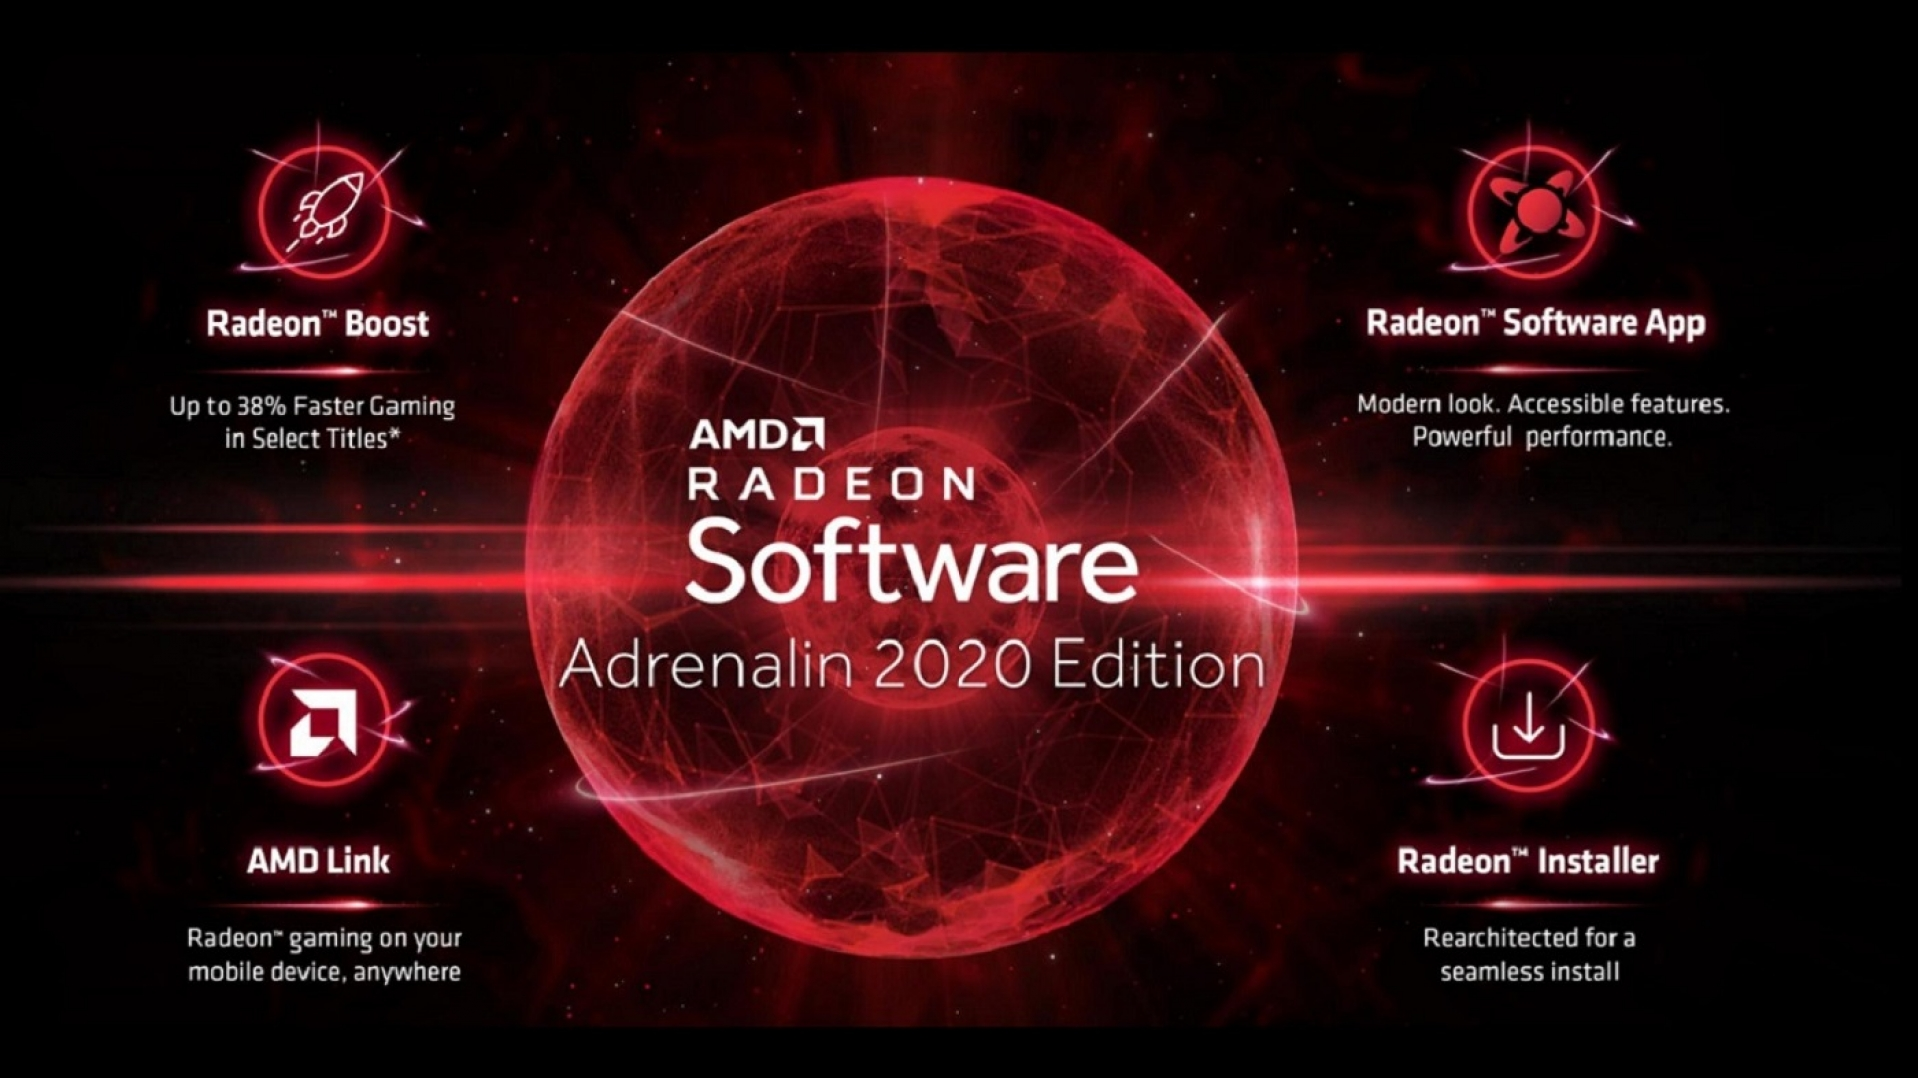 Amd S Latest Radeon Drivers Promise To Squash Your Black Screen Issues And Crashes Oc3d News